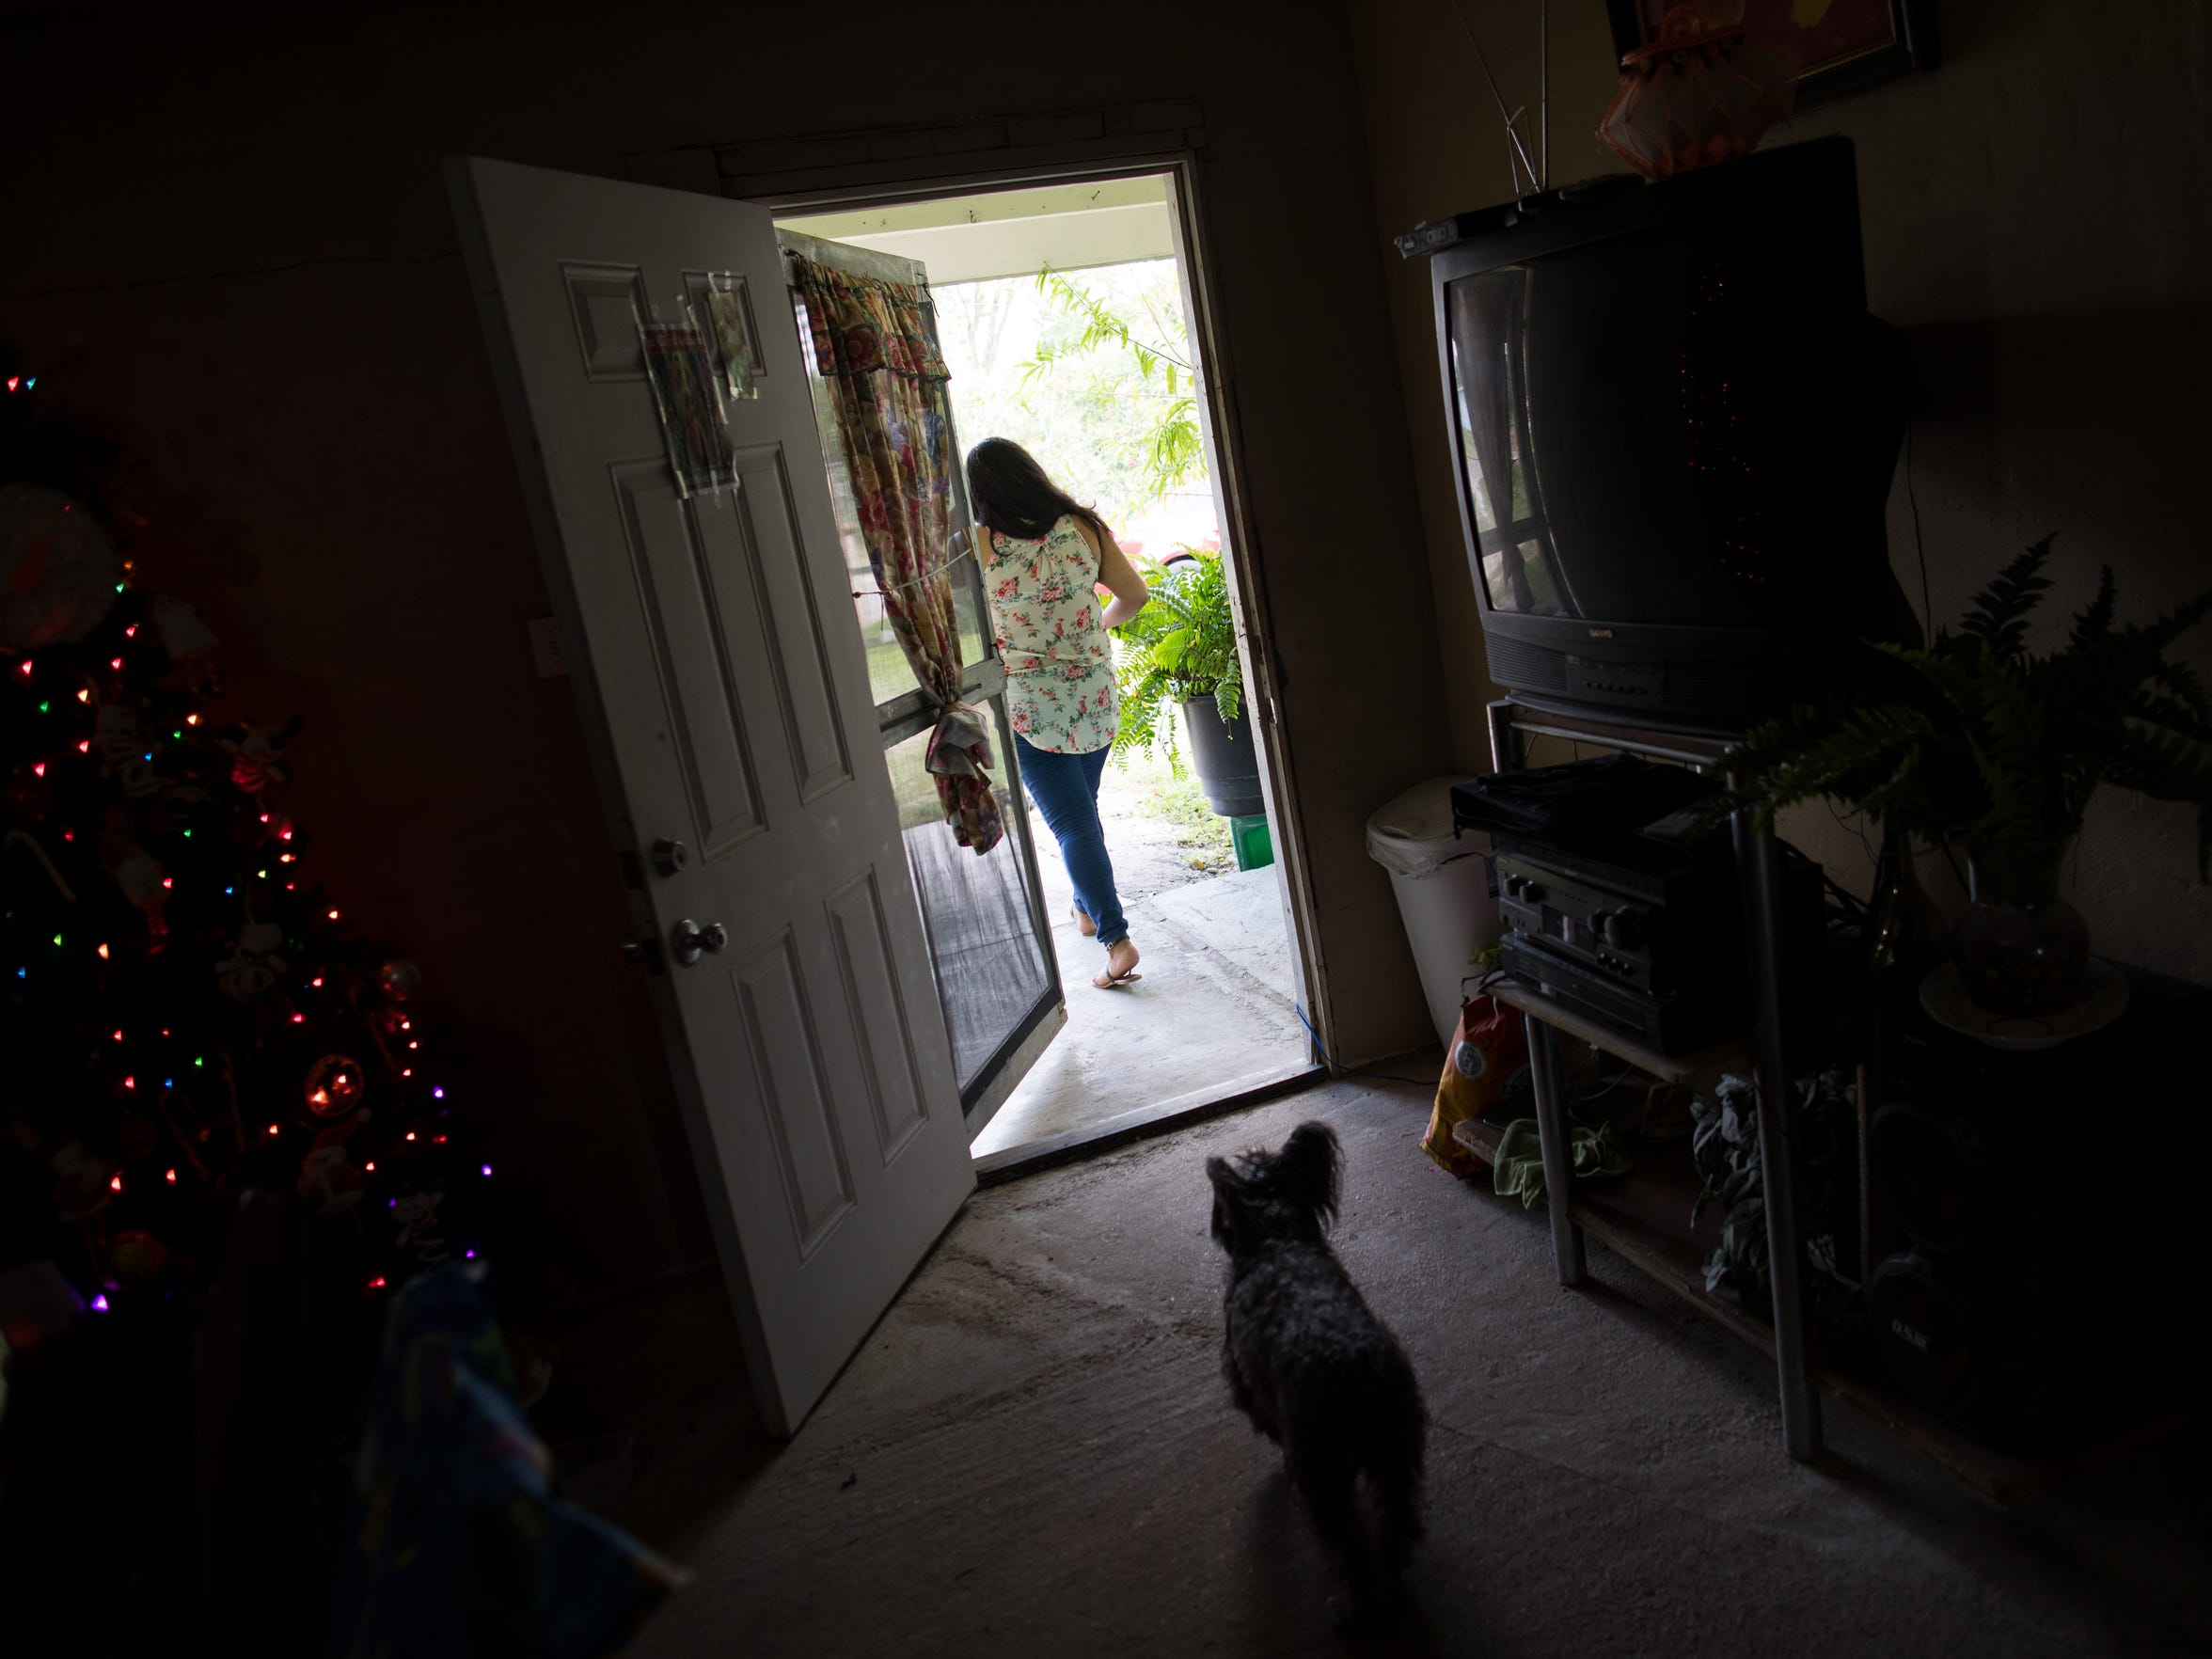 Mia Maria Hernandez's dog follows her as she walks out the front door of her mothers home in Alamo Texas on Saturday, Nov. 4, 2017. Maria had driven down from Kingsville Texas to attend her mothers 50th birthday party.